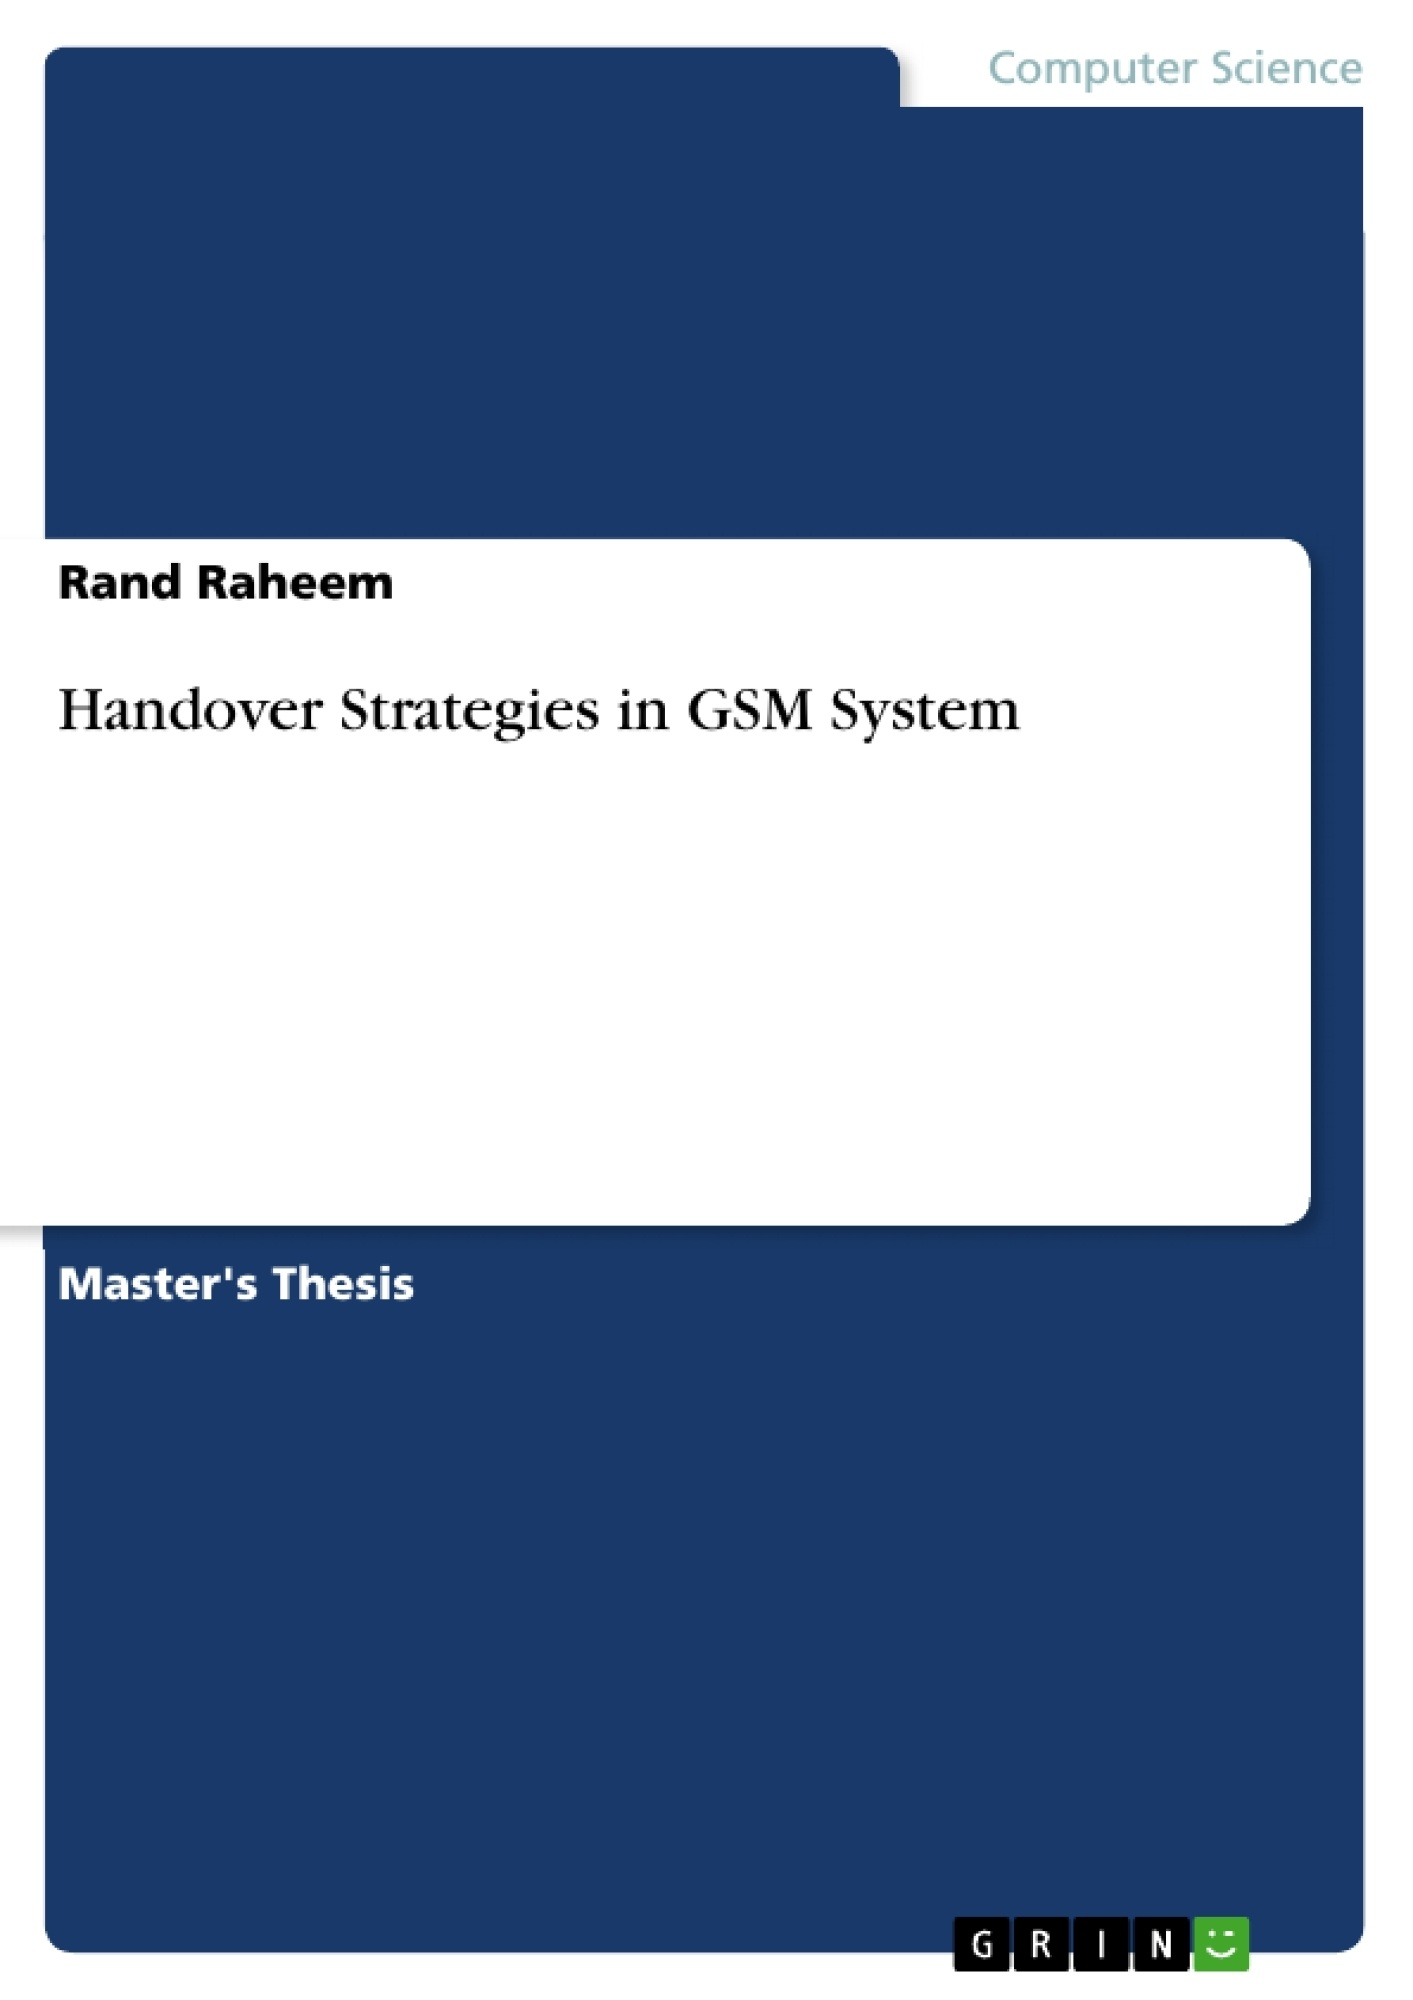 Title: Handover Strategies in GSM System